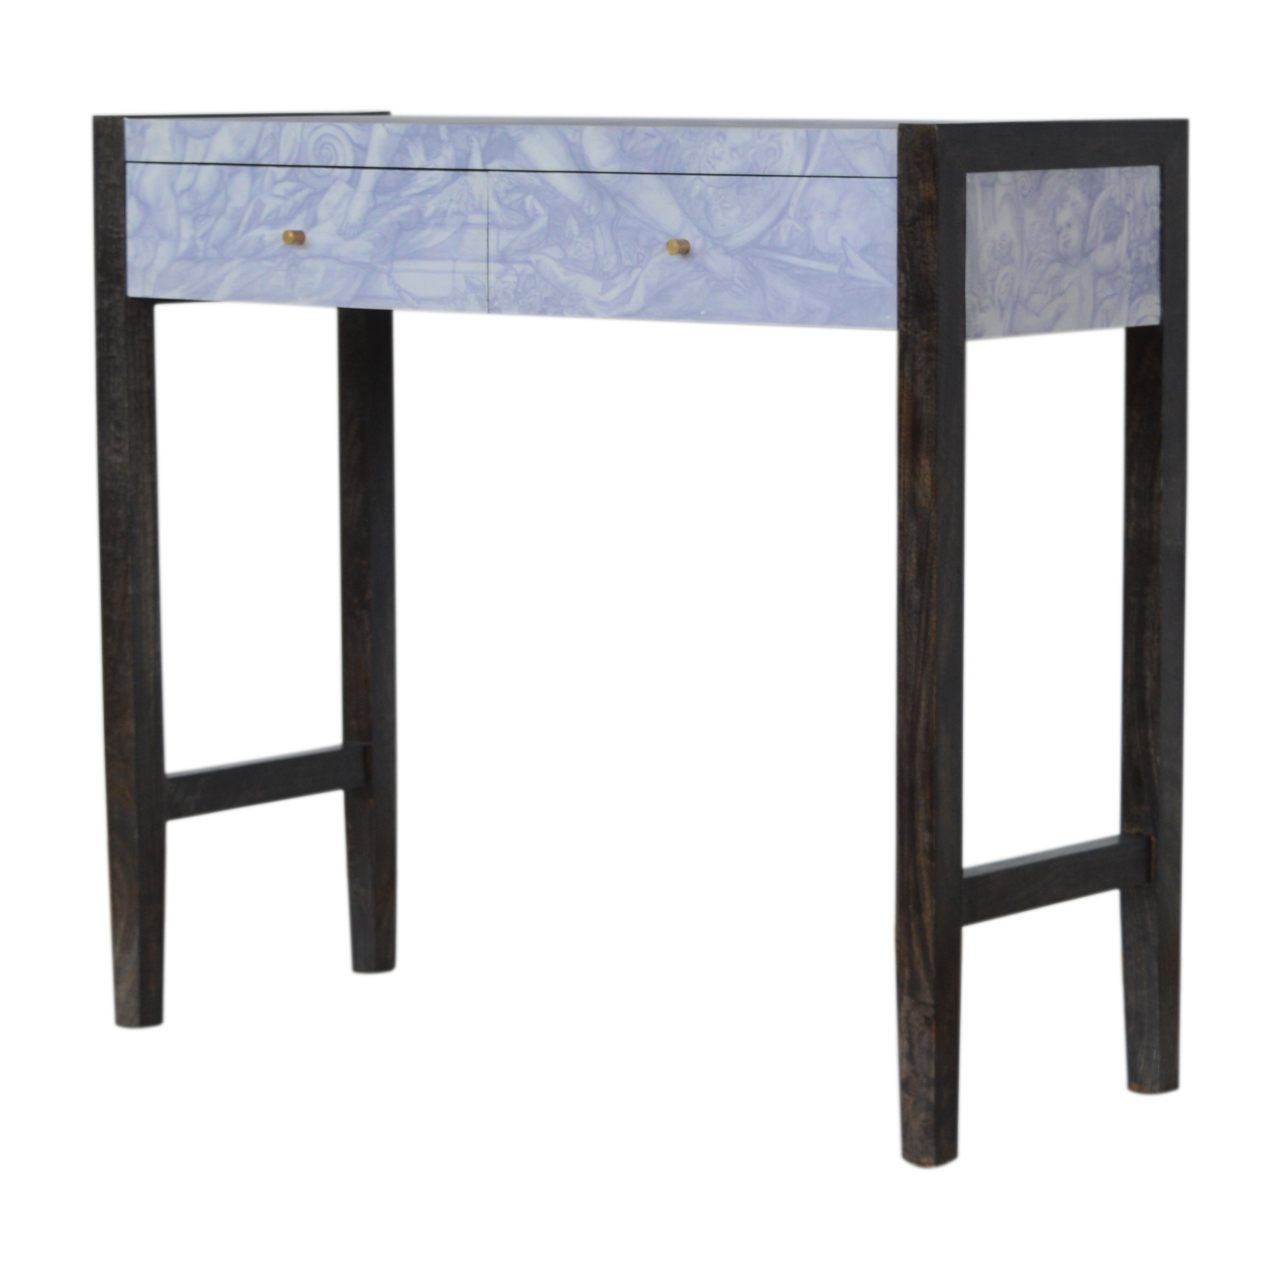 AVANTI GARDEN OF VENUS CONSOLE TABLE